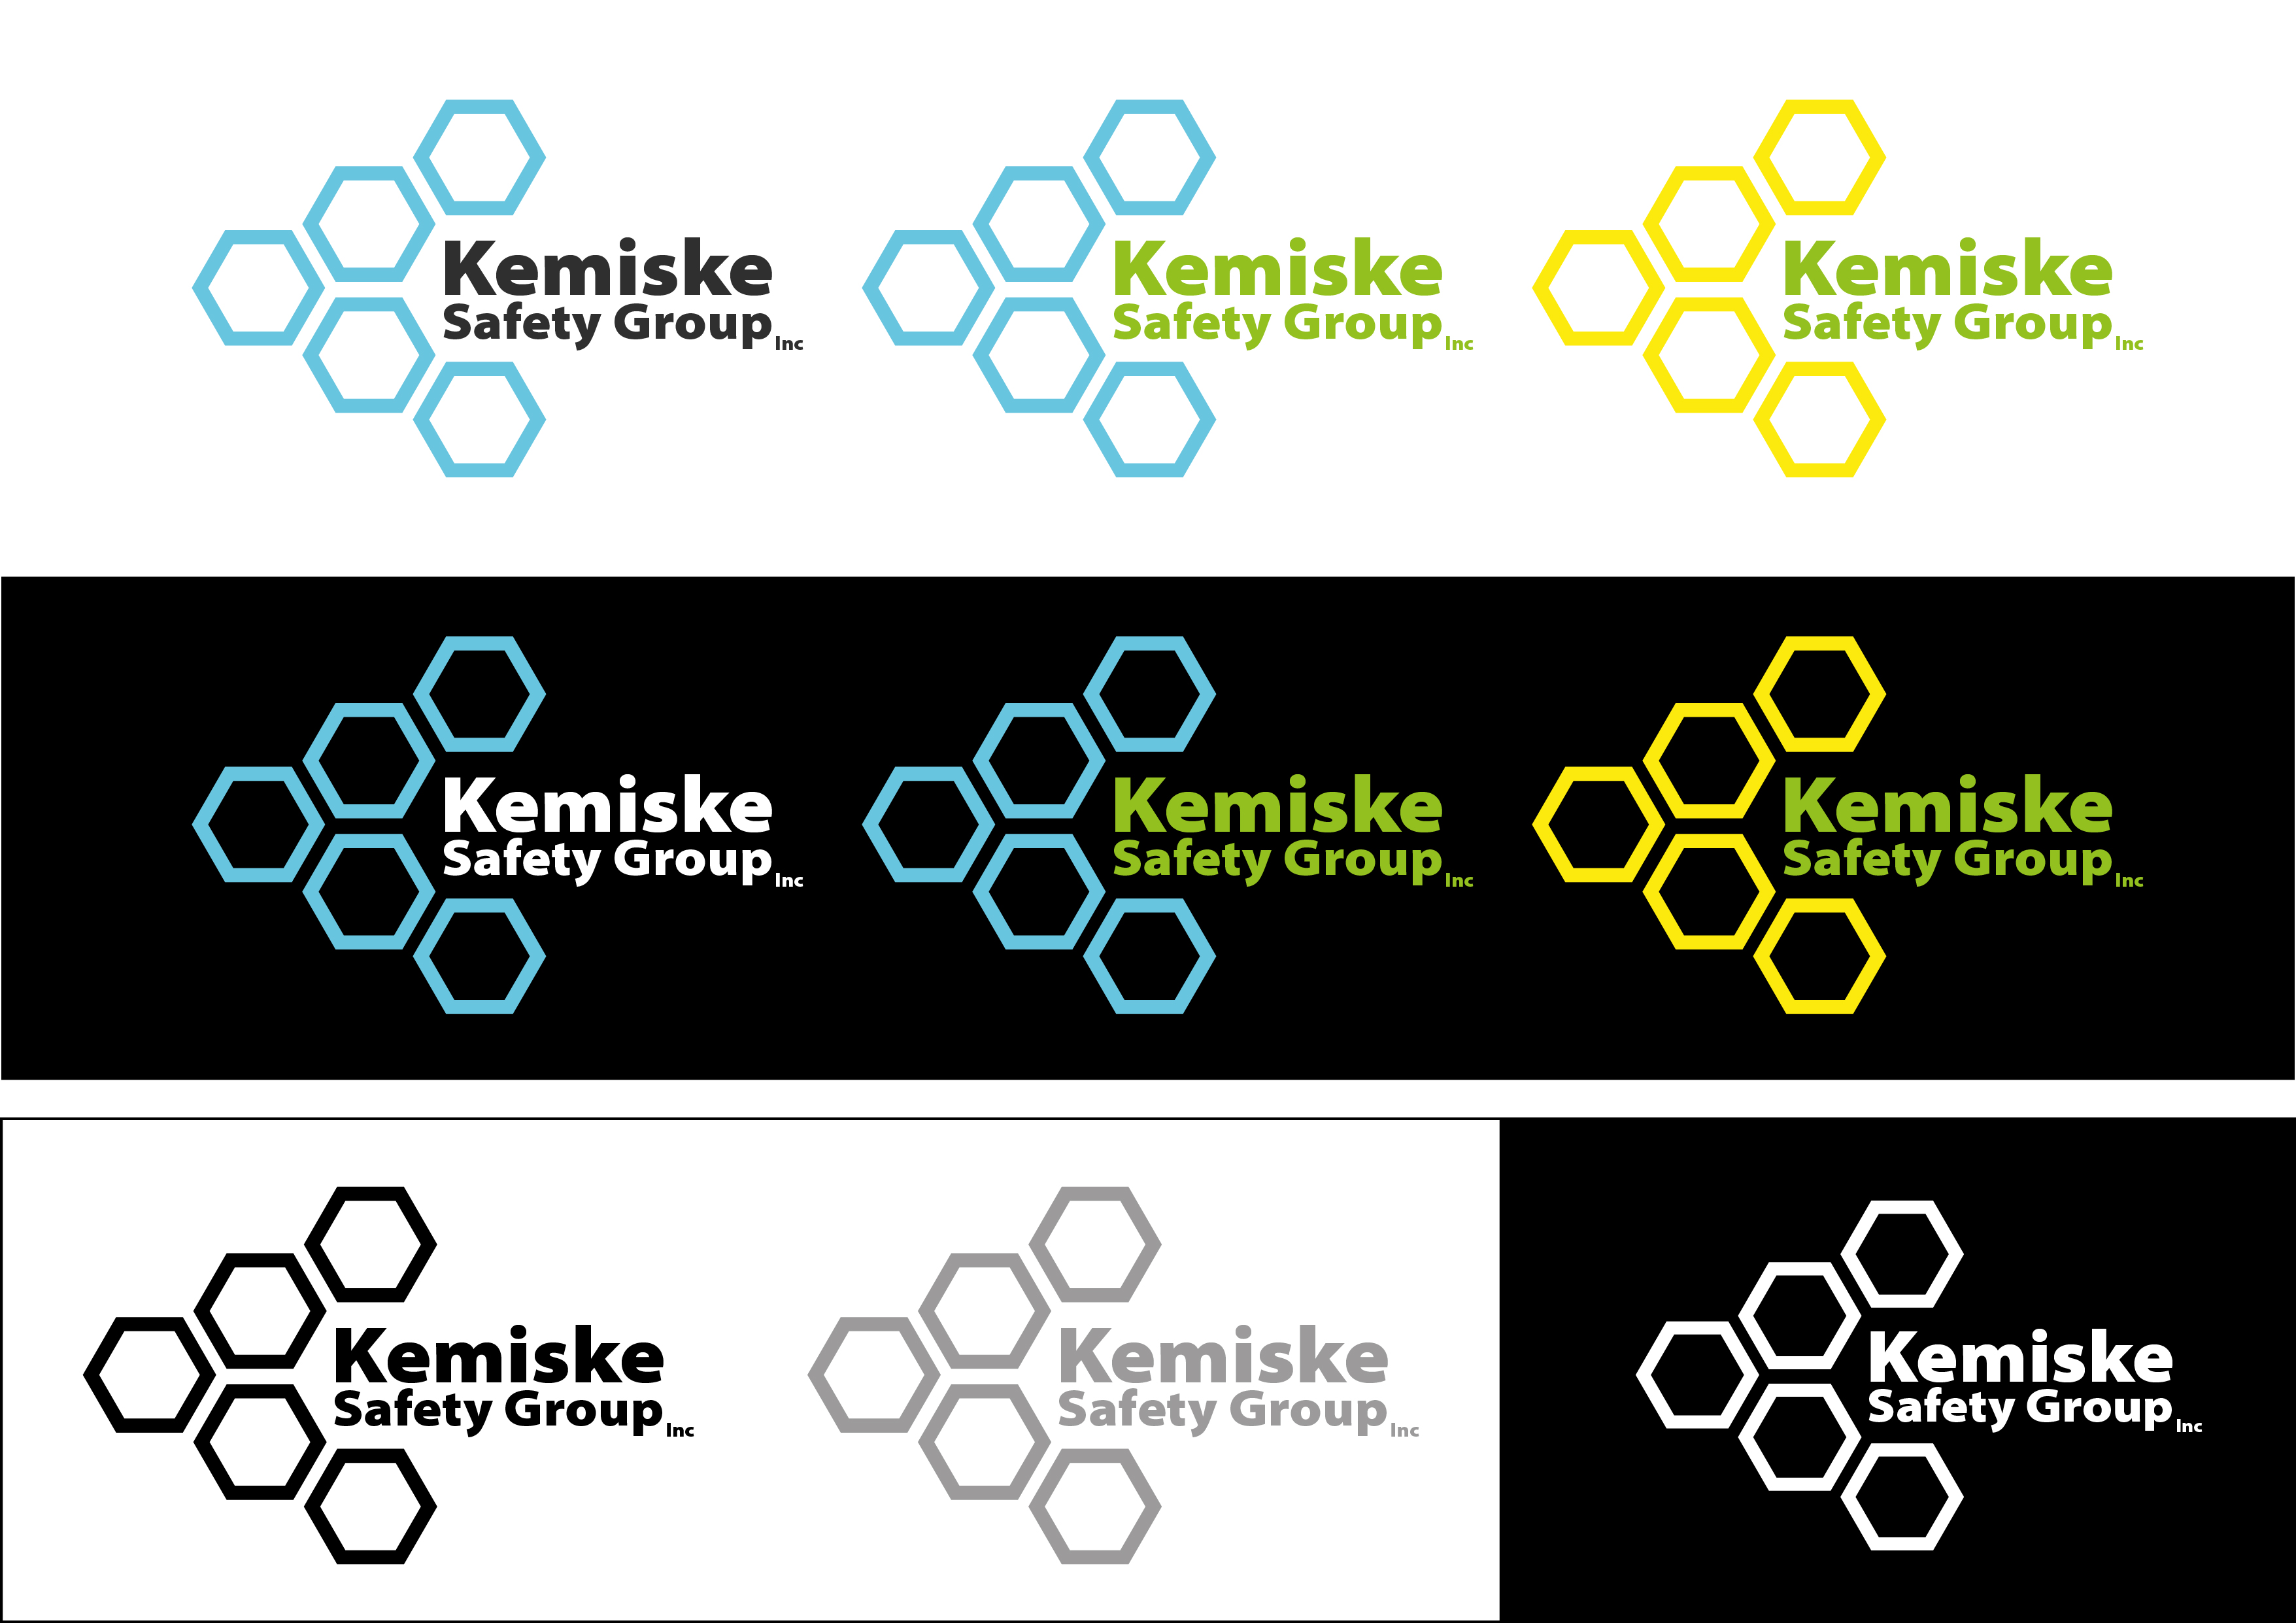 Logo Design by 3draw - Entry No. 73 in the Logo Design Contest New Logo Design for Kemiske Safety Group Inc..